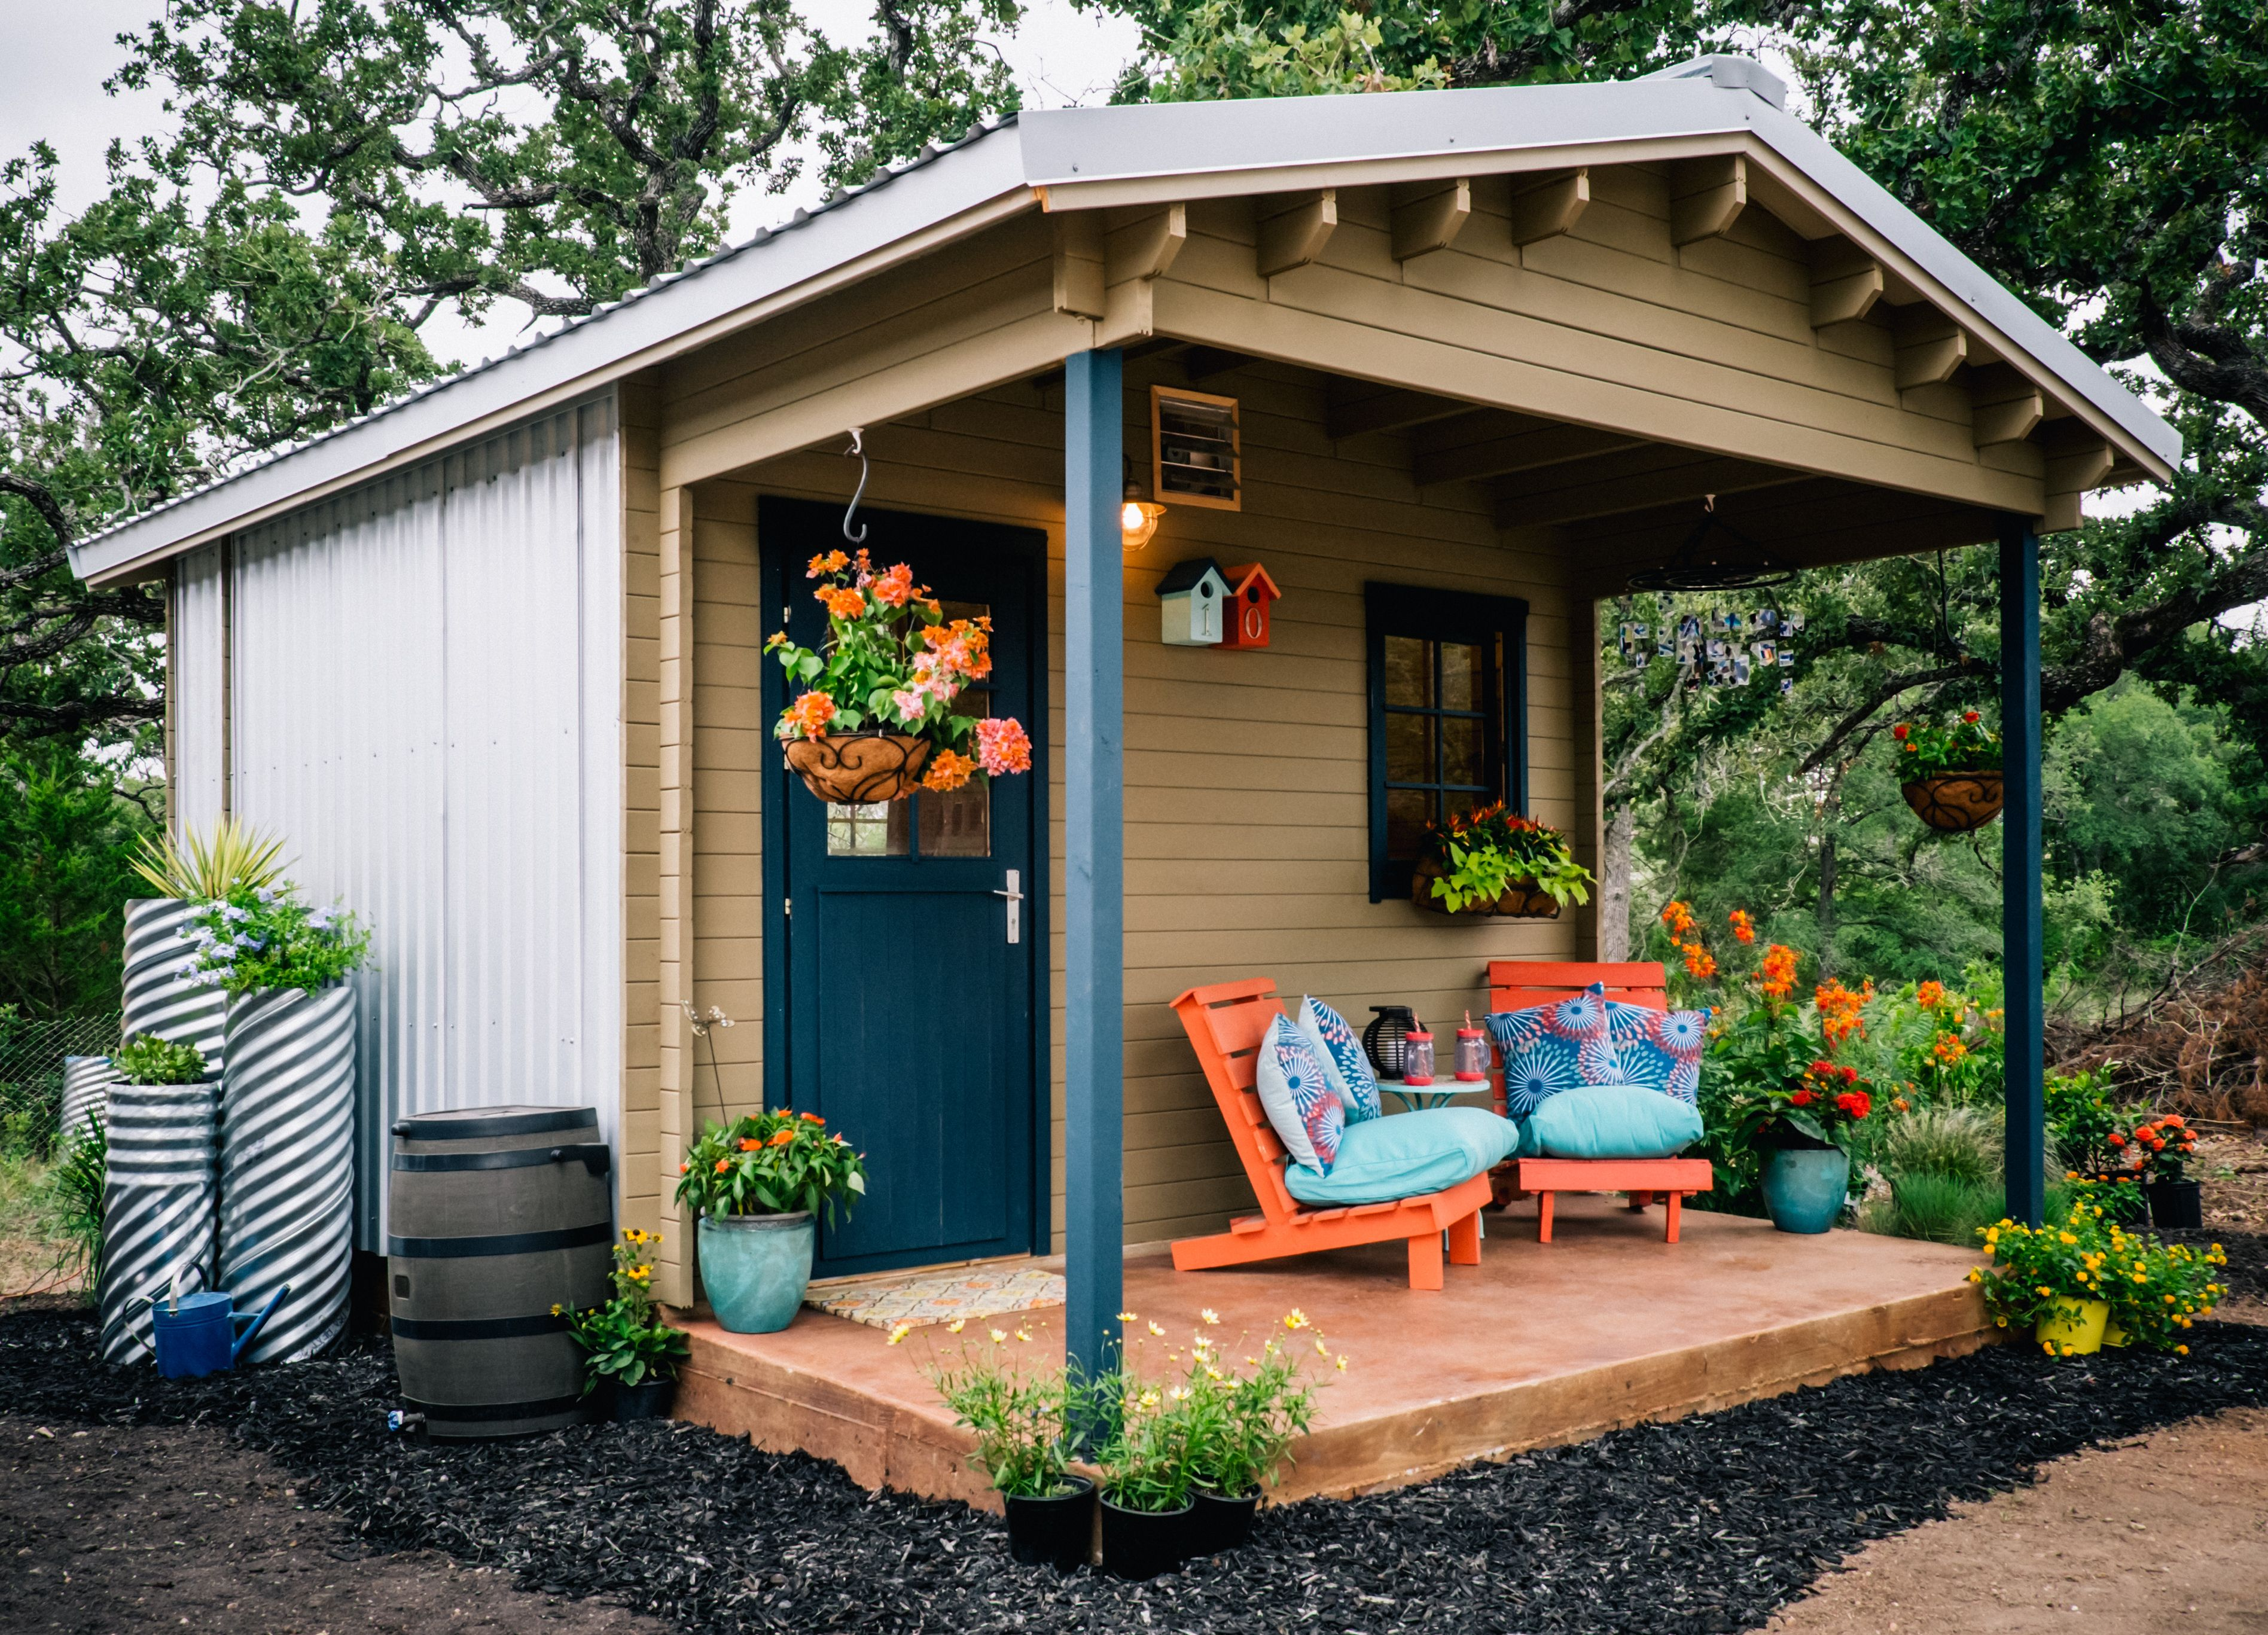 Tiny house zoning regulations: What you need to know (With images